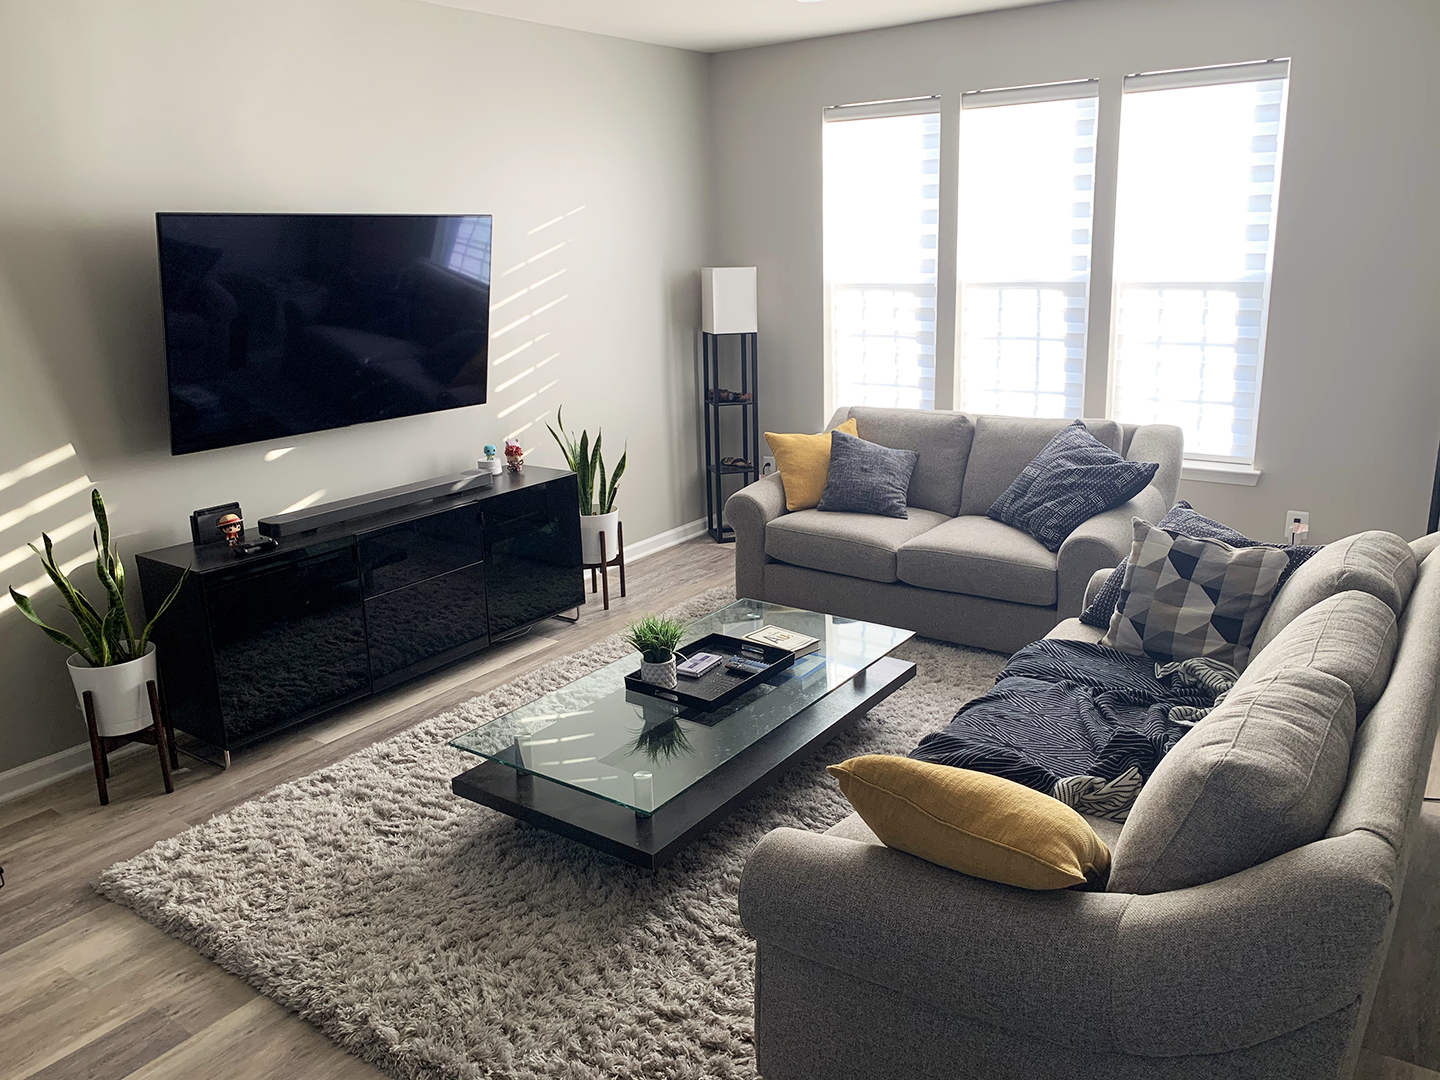 Bare Walls But Coming Along Nicely Interior Living Space Desig Apartment Living Room Design Interior Design Living Room Small Living Room Design Small Spaces [ 1080 x 1440 Pixel ]